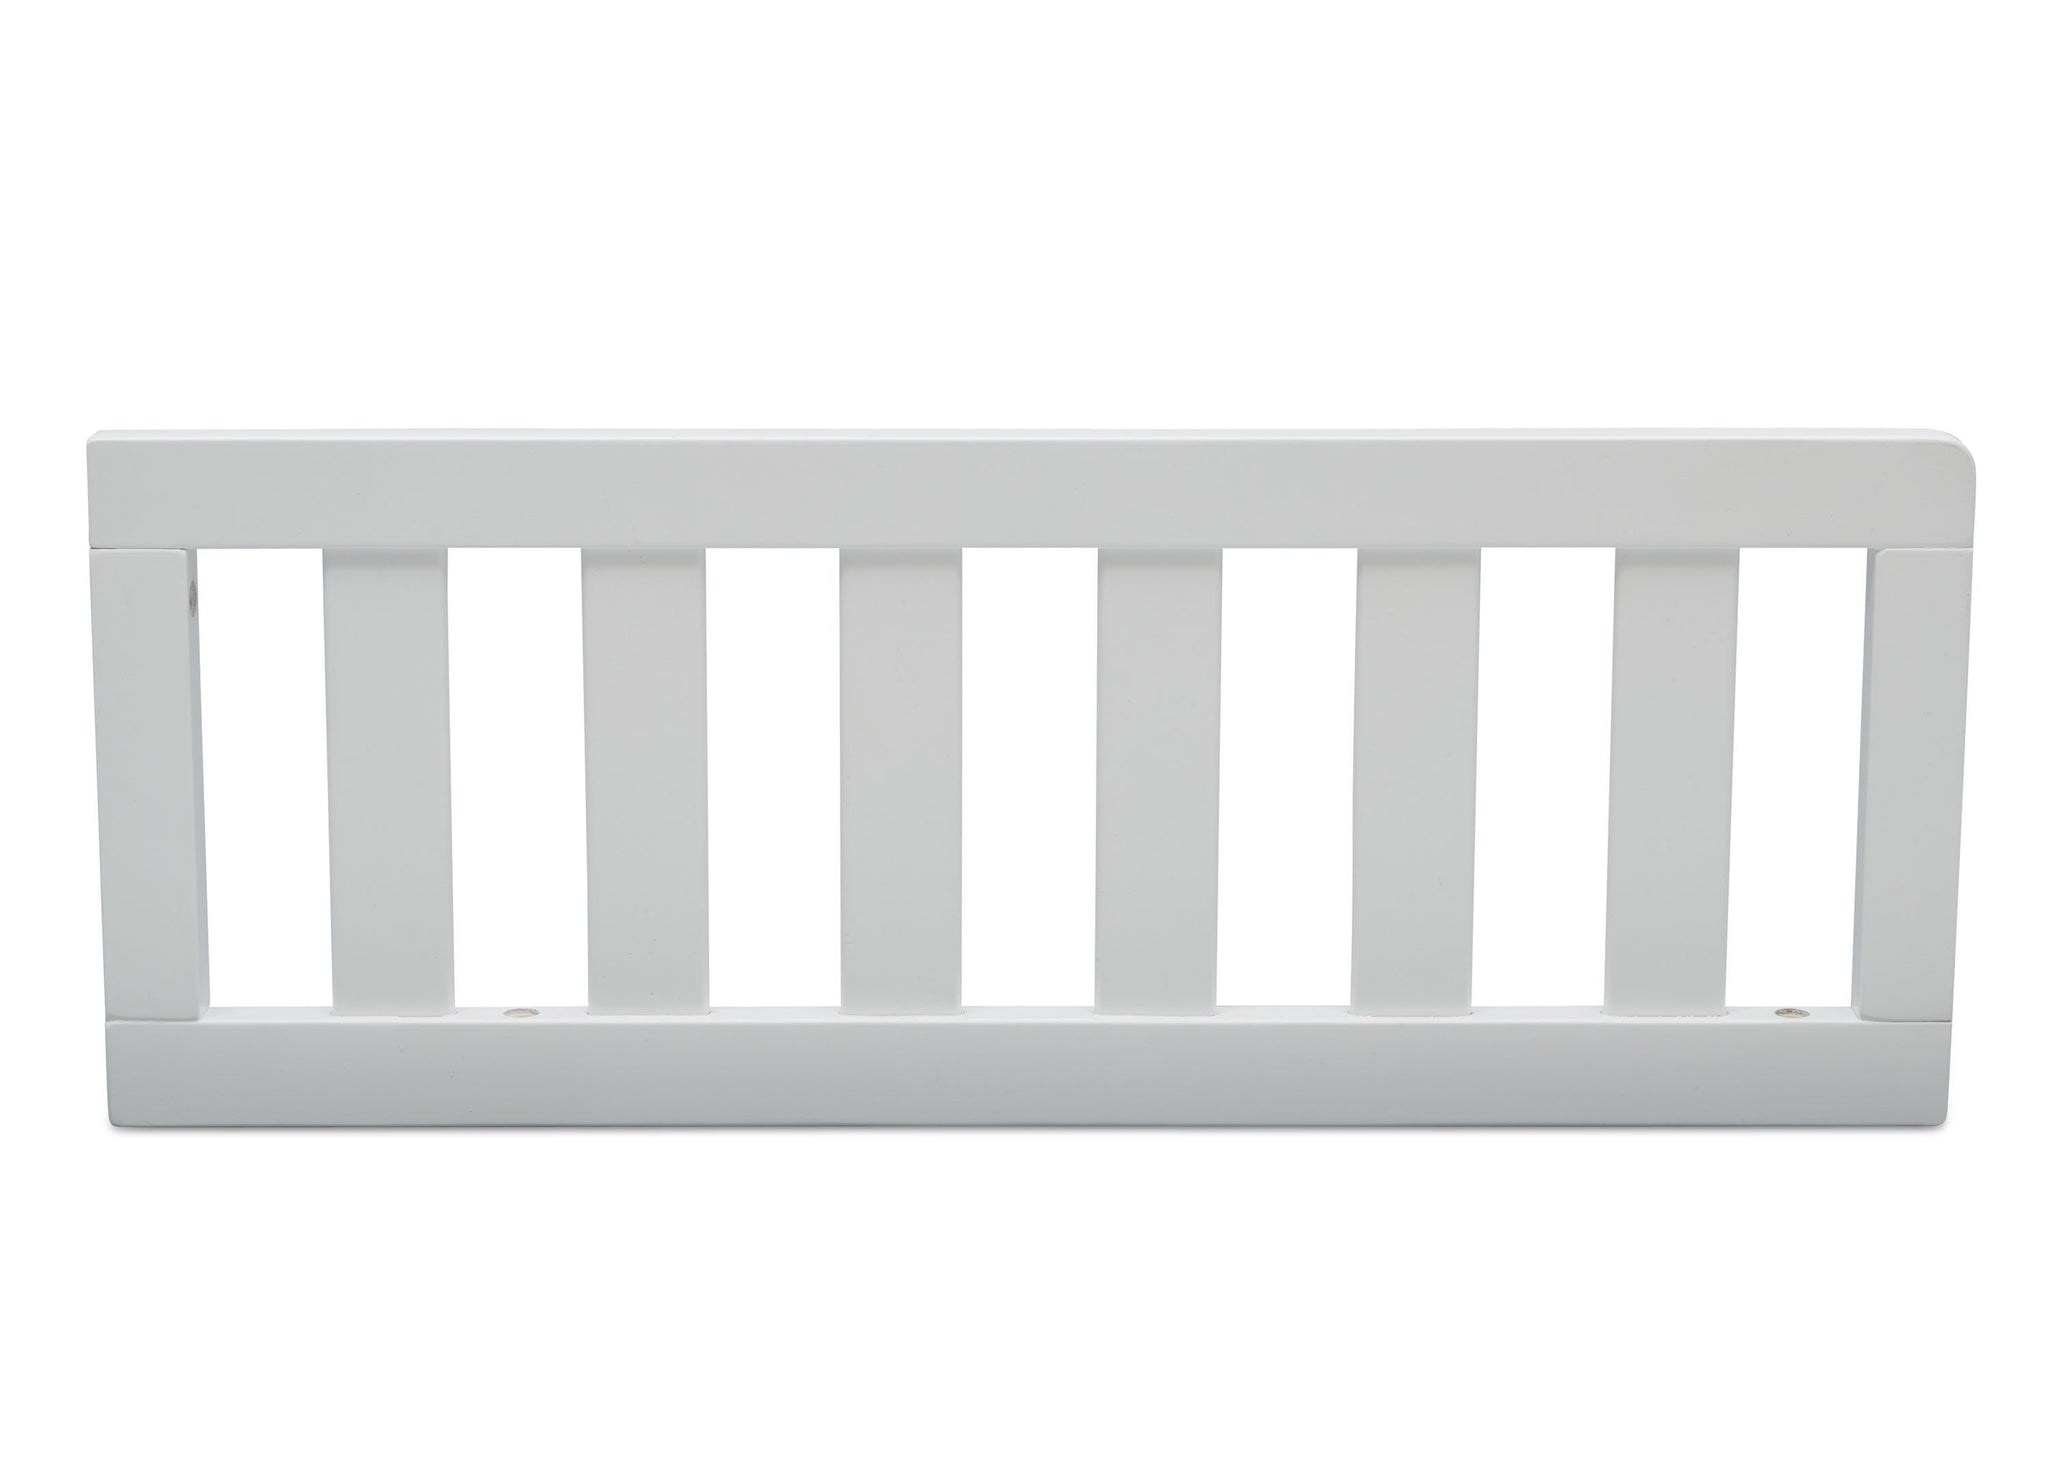 Serta Bianca (130) Daybed/Toddler Guardrail Kit (706725), Front View a2a